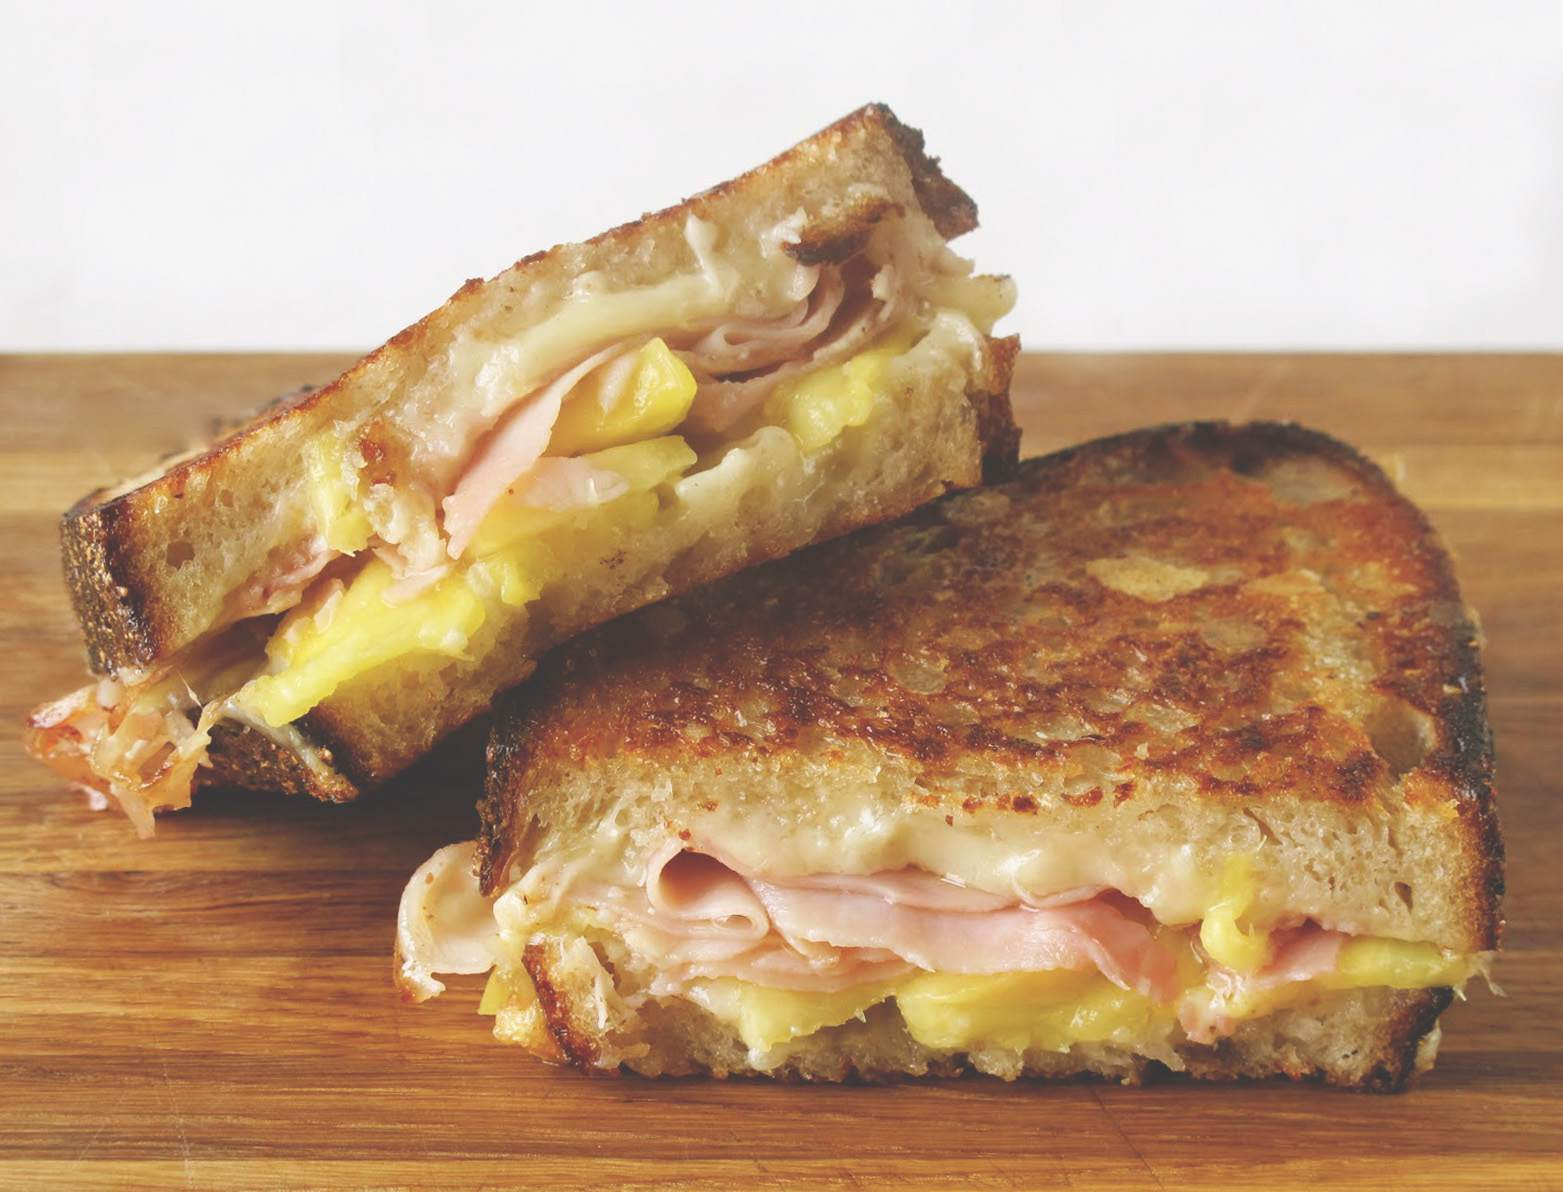 Comte grilled cheese sandwich with ham and pineapple